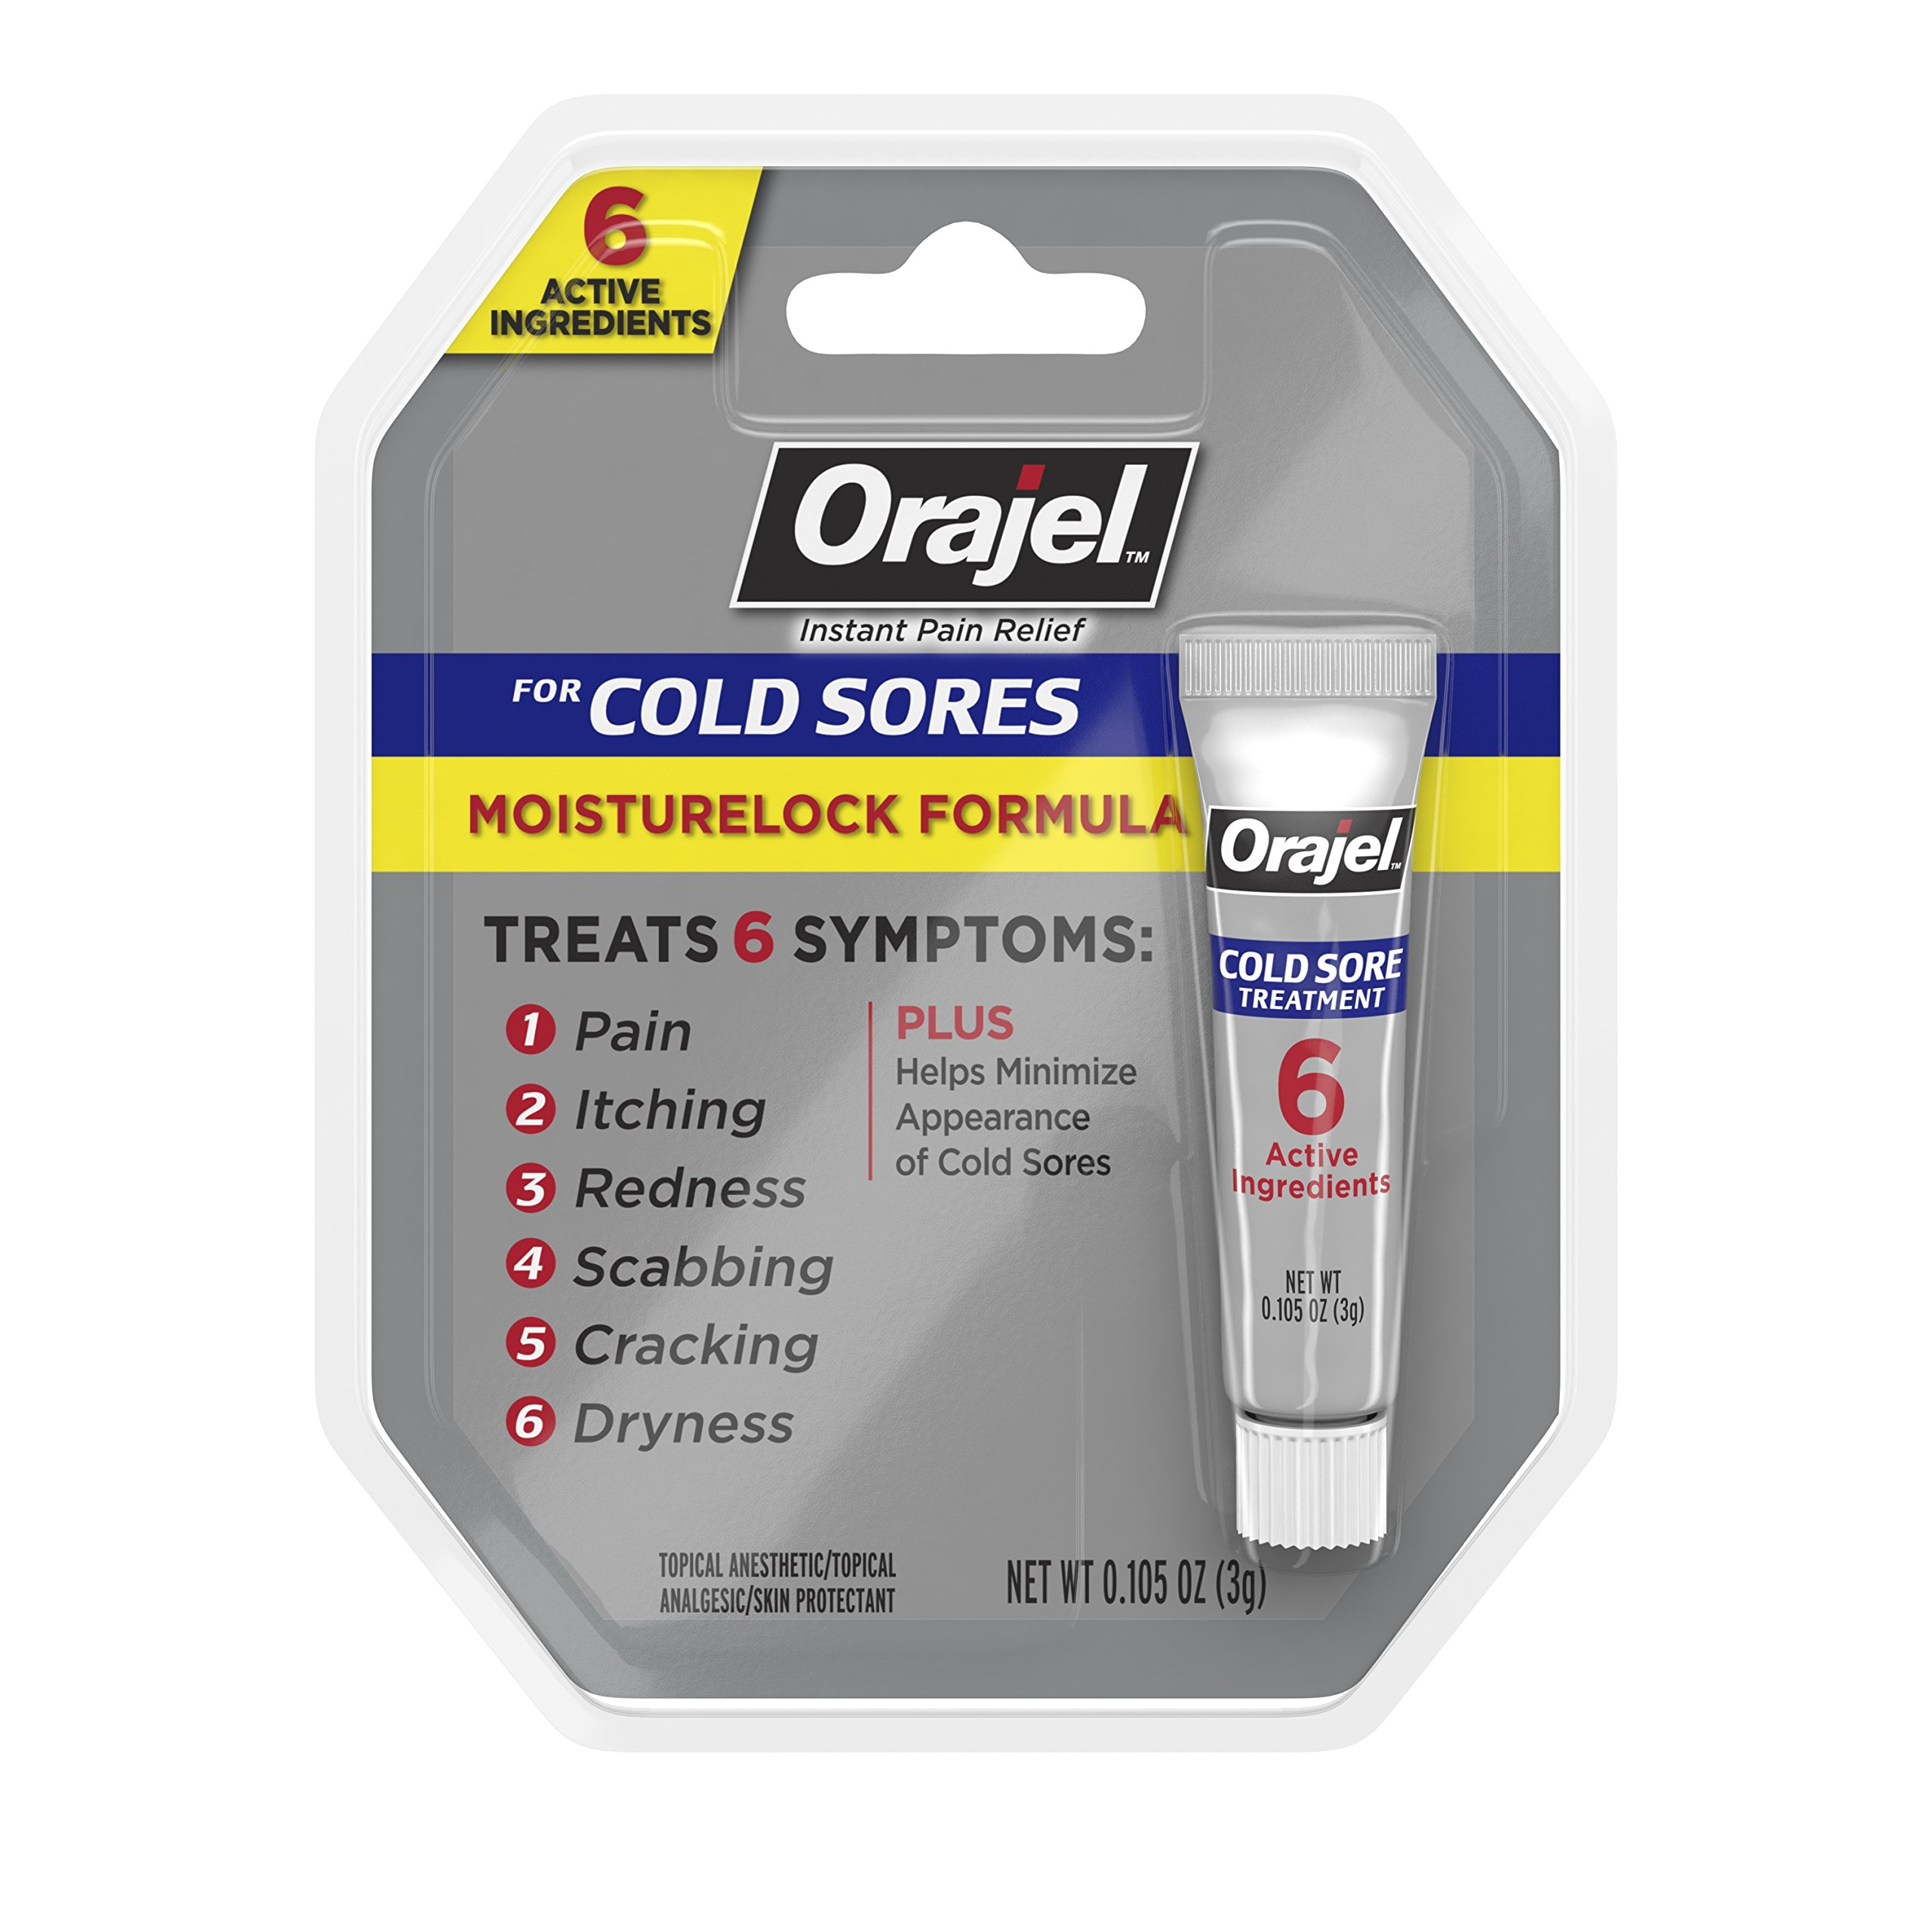 Orajel Moisturelock Cold Sore Treatment, Cream 0.105 oz